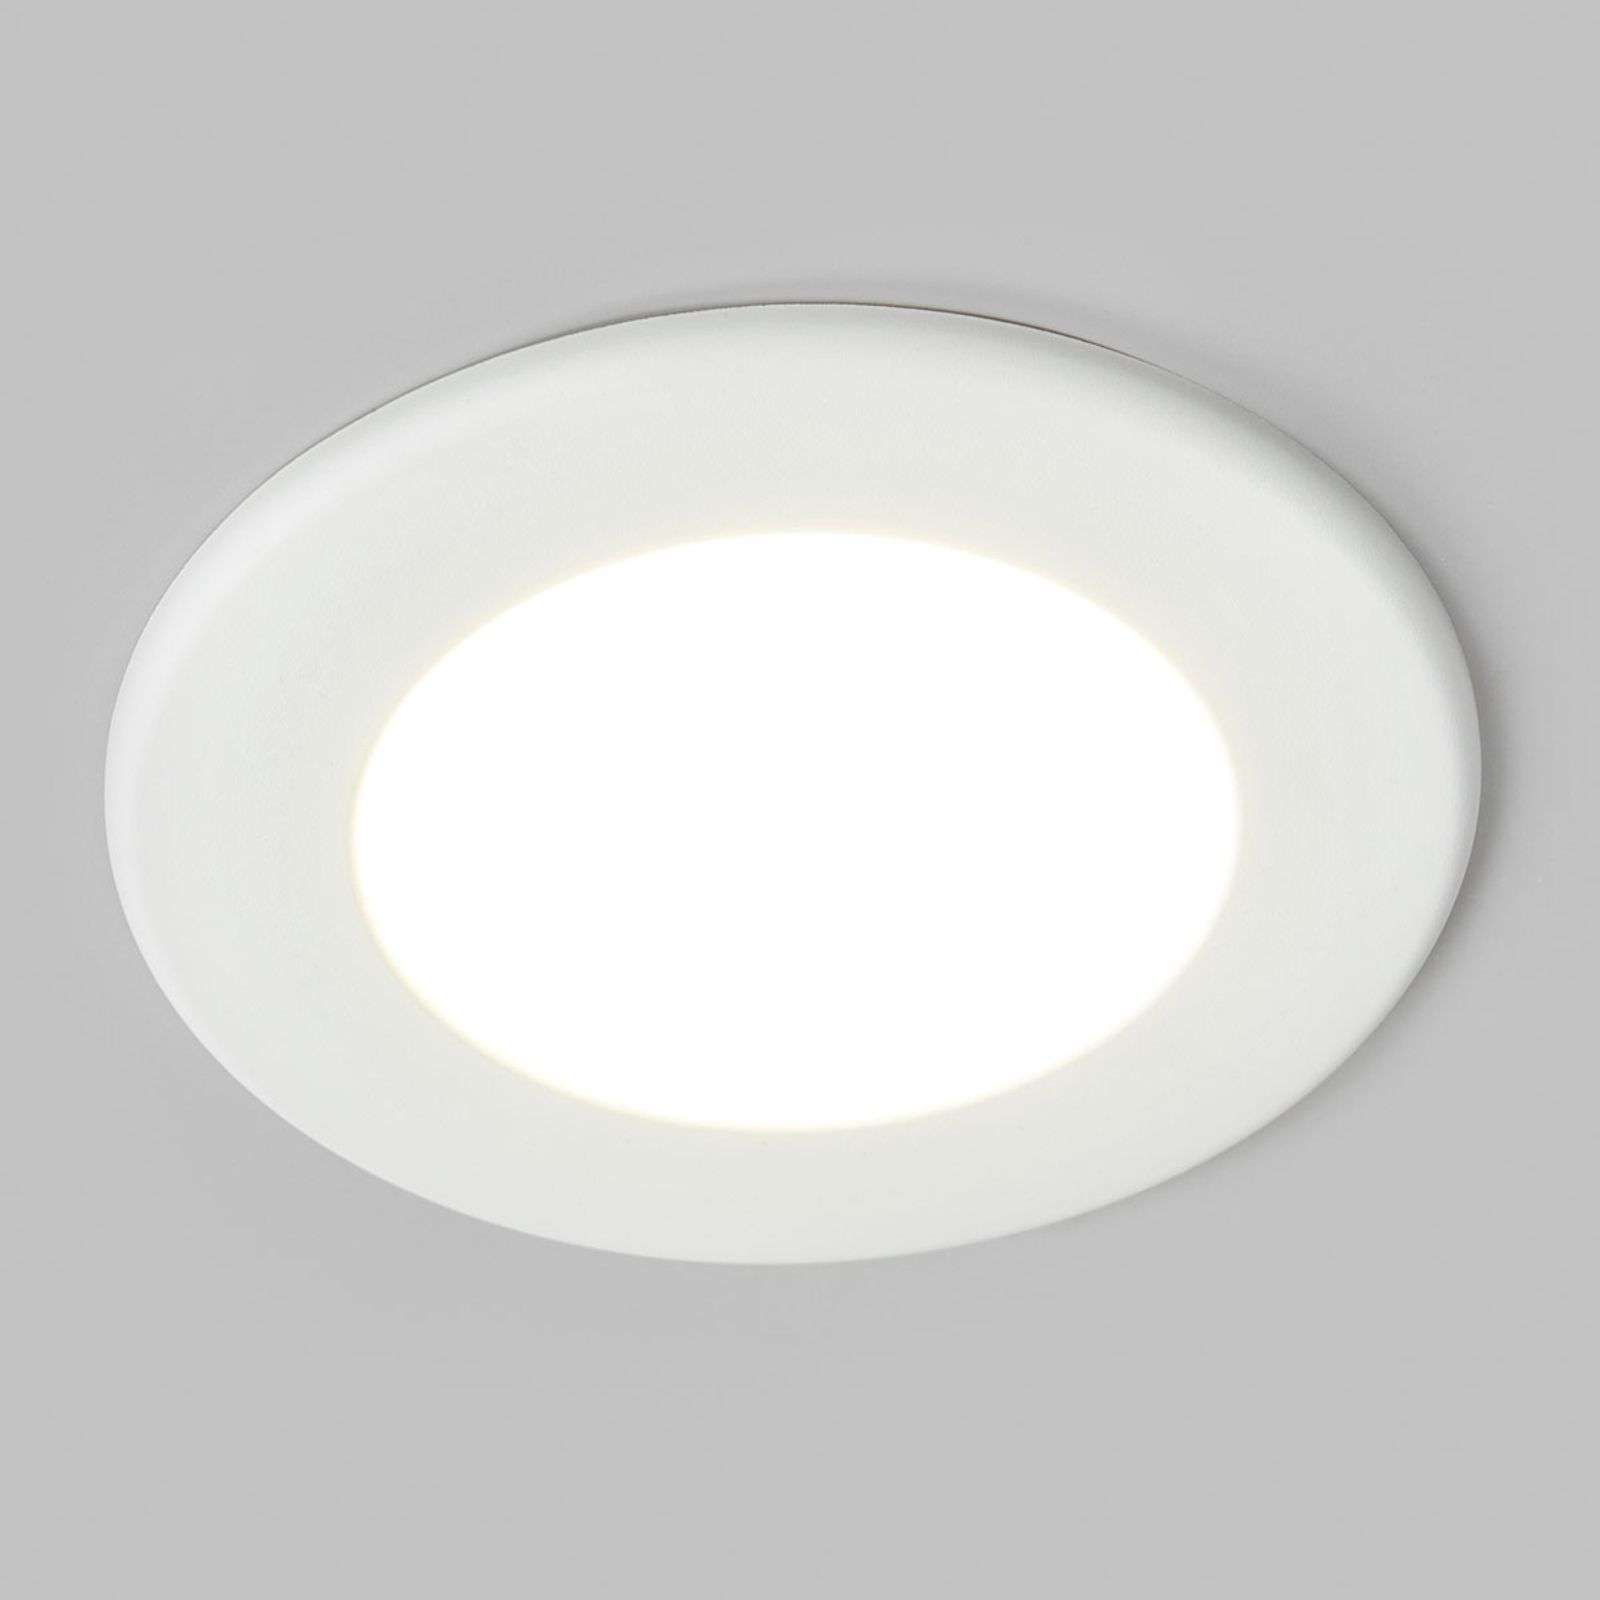 Spot encastrable LED blanc Joki, IP44